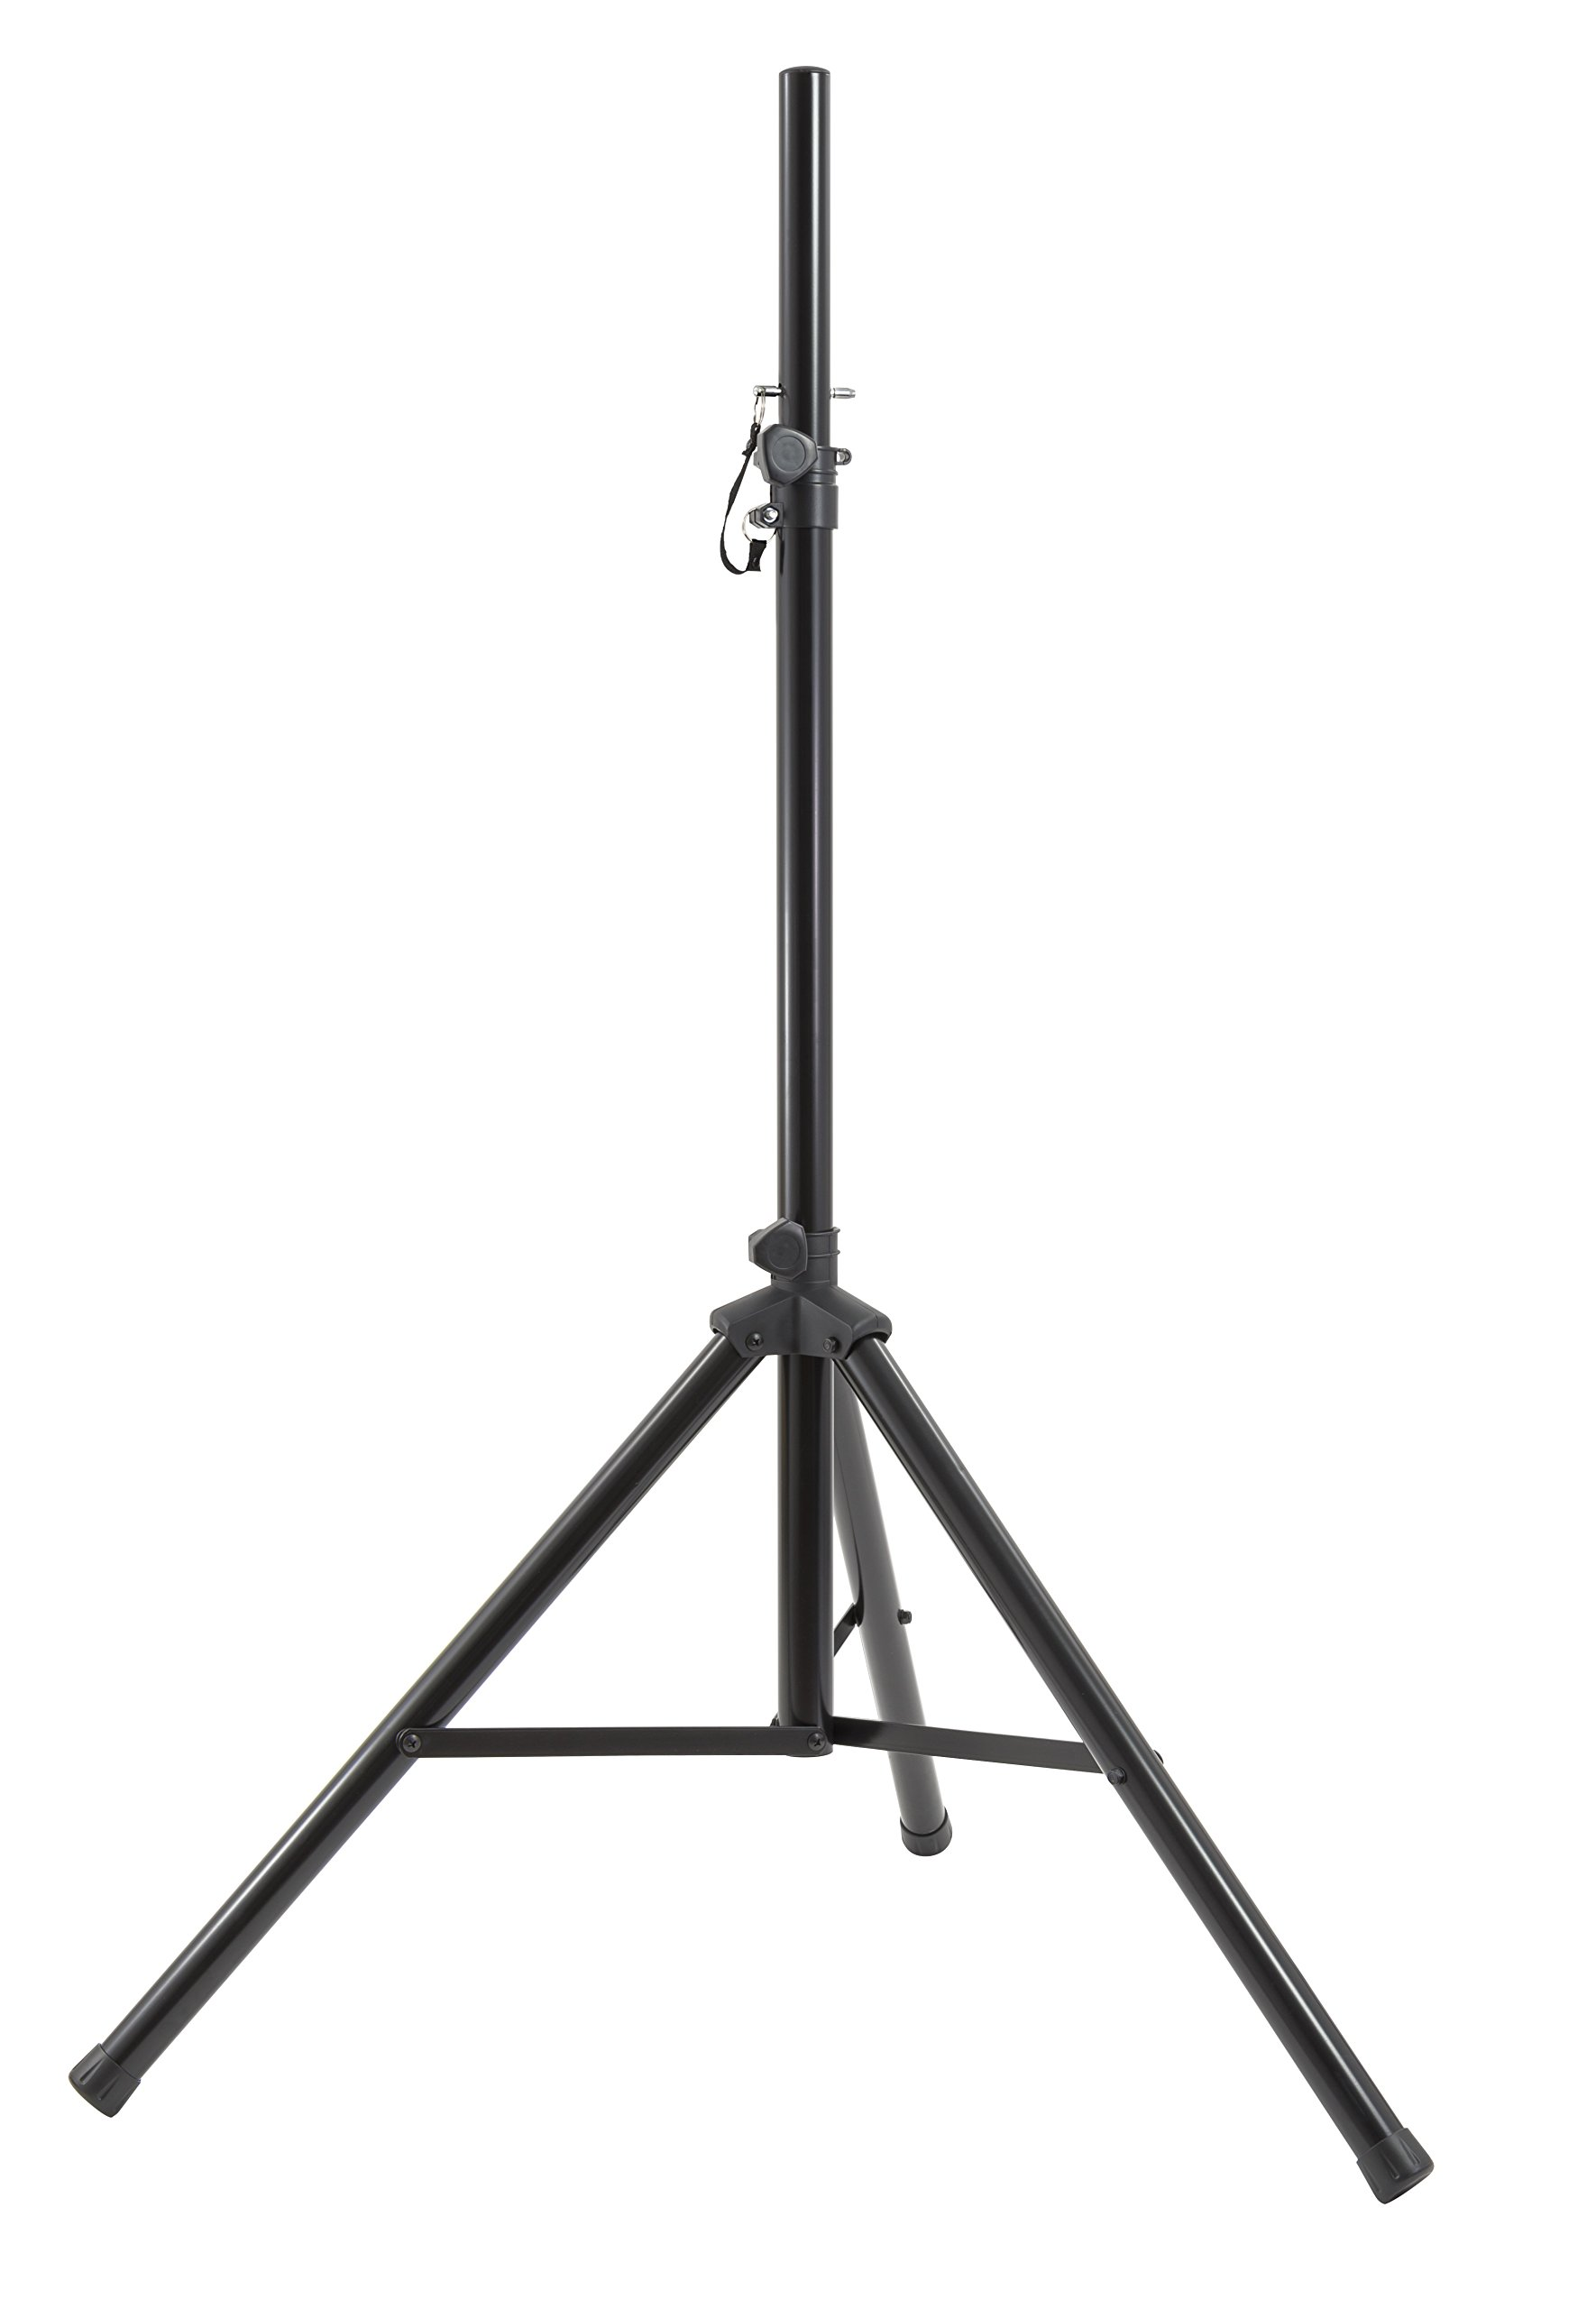 Gemini Series ST Professional Audio DJ Fold-Out Telescoping Tripod Stands Up to 80'' Tall, 1 Pack (ST)